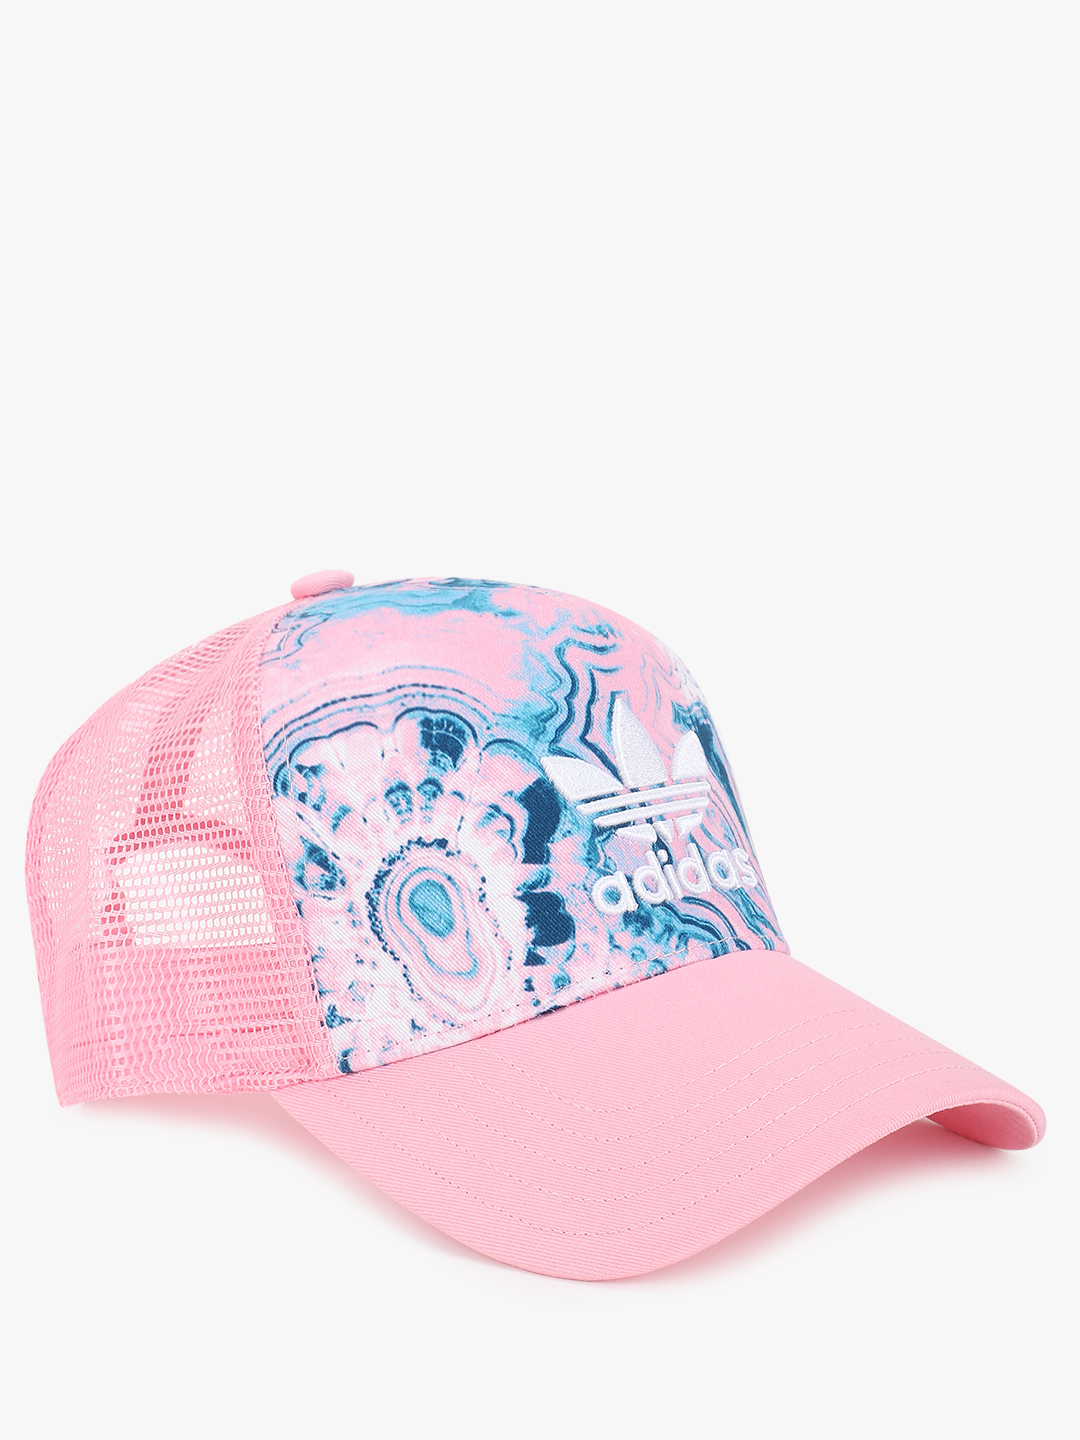 Adidas Originals Pink Trucker Cap 1